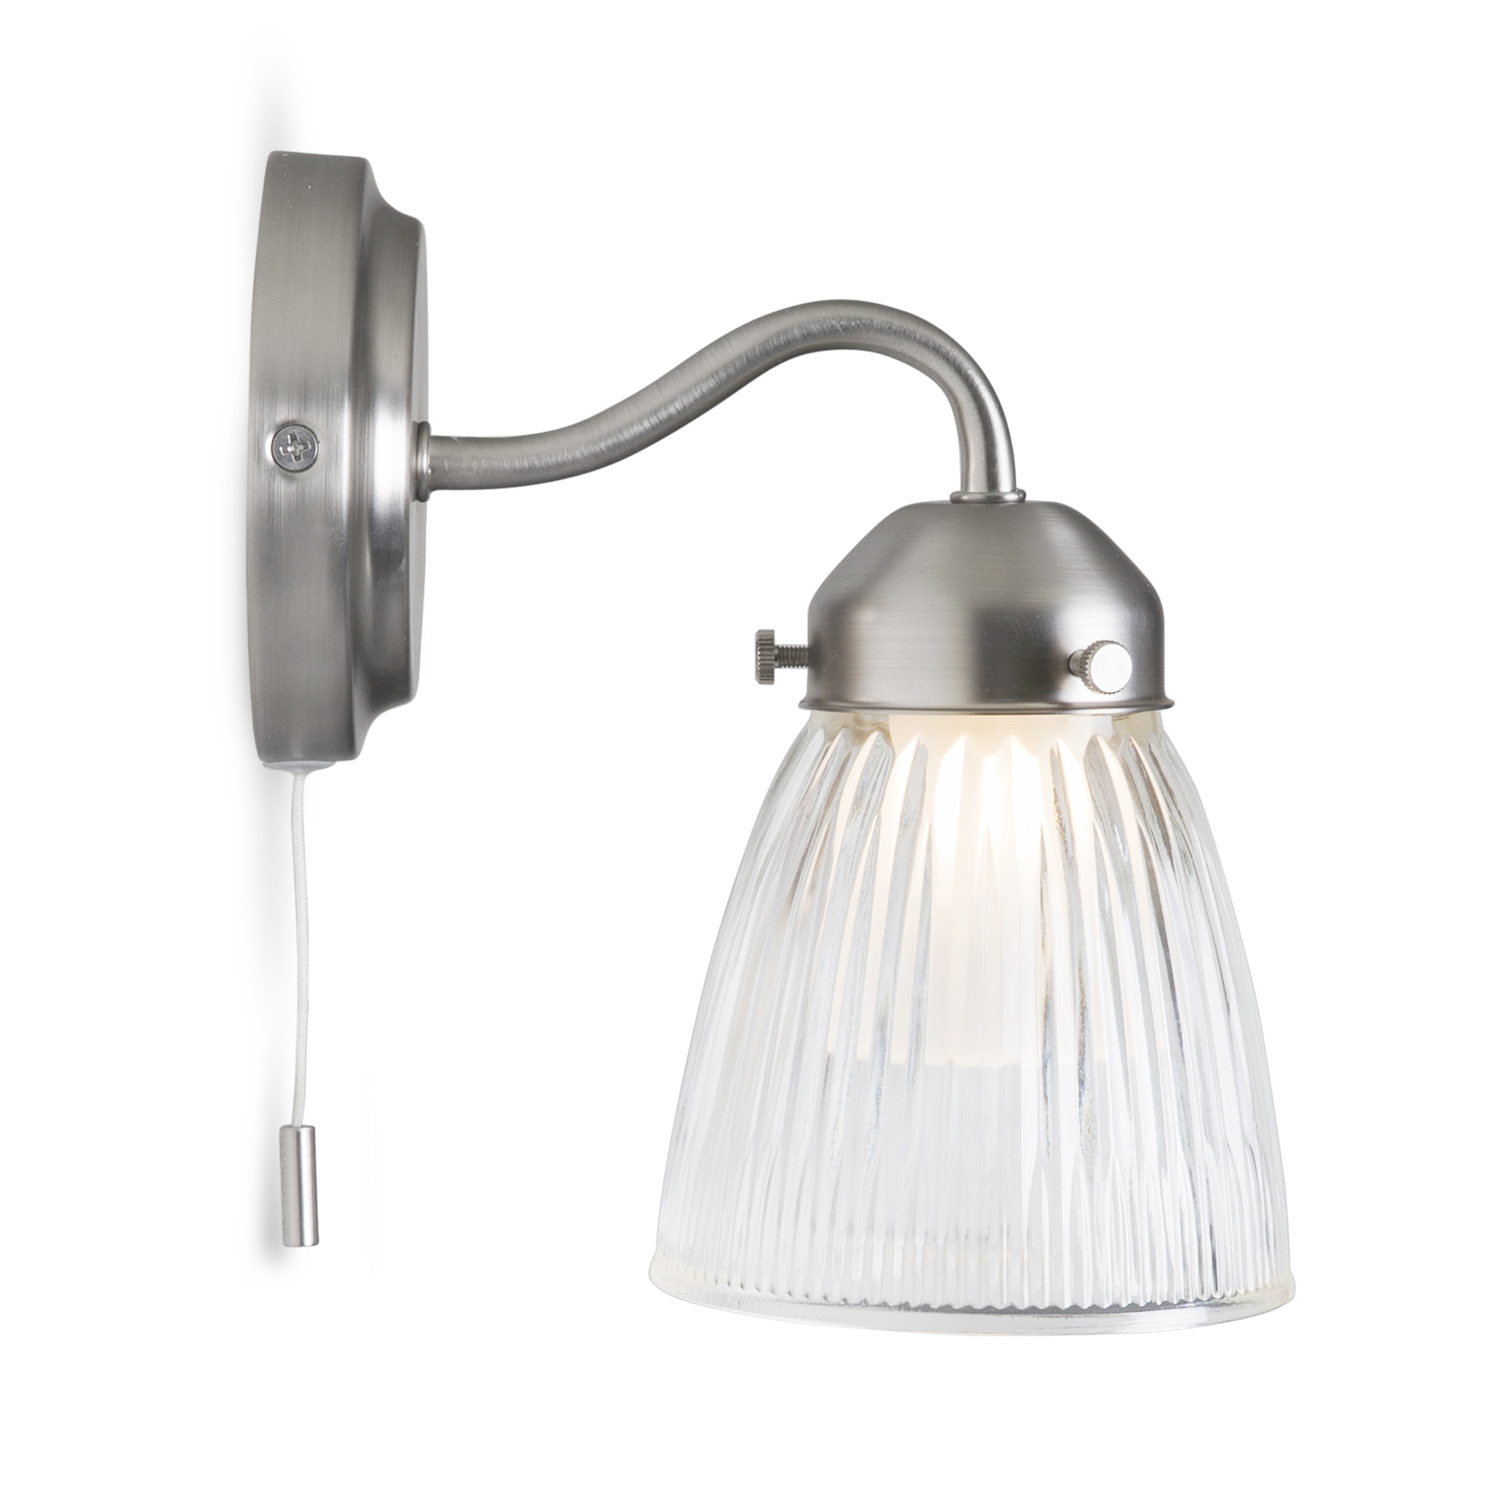 Image of Garden Trading Pimlico Bathroom Light, Glass